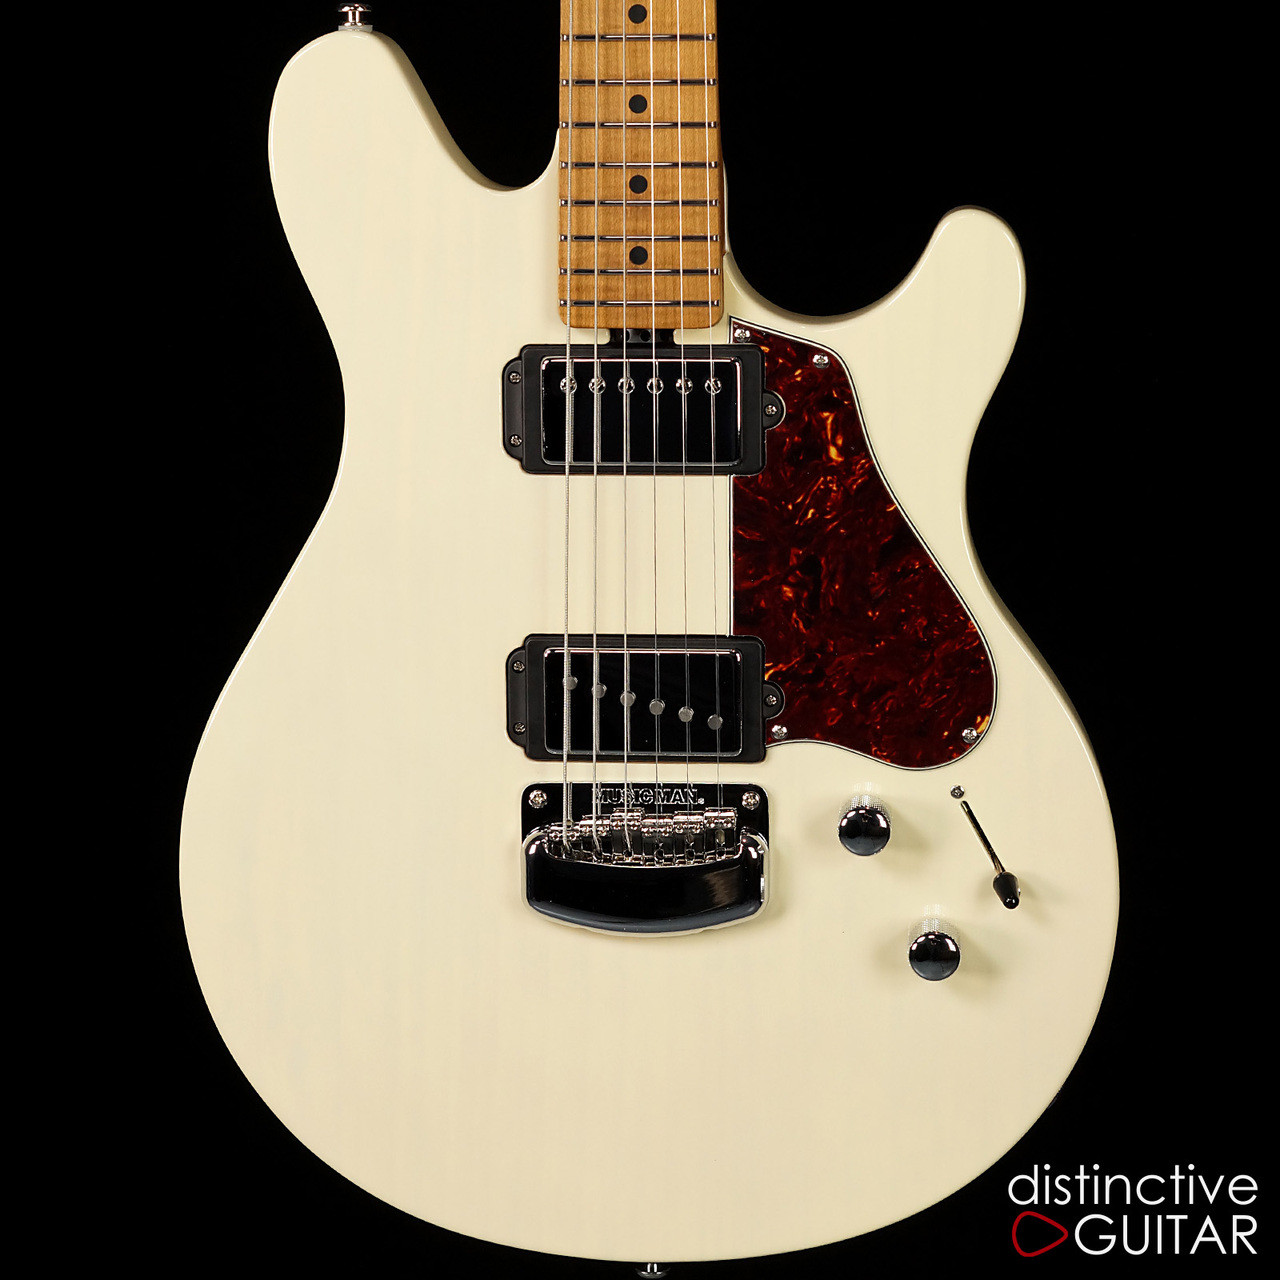 Ernie Ball Music Man Valentine Signature Trans Buttermilk